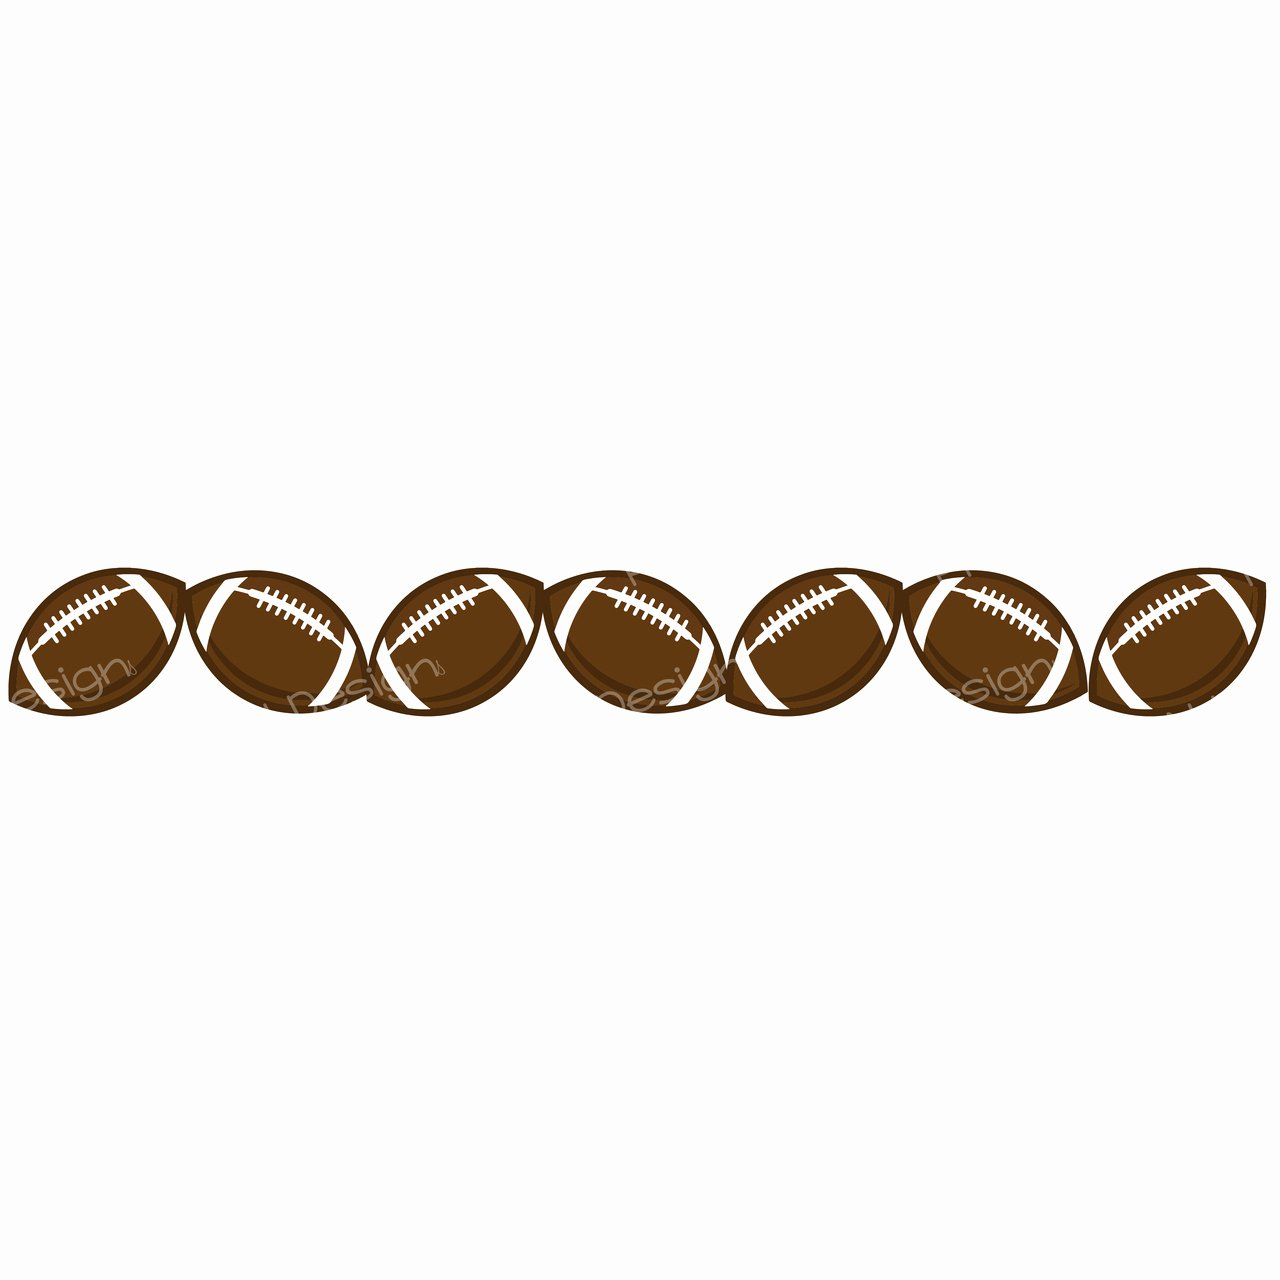 Free Football Border Template Best Of Best Football Border Clipart Clipartion